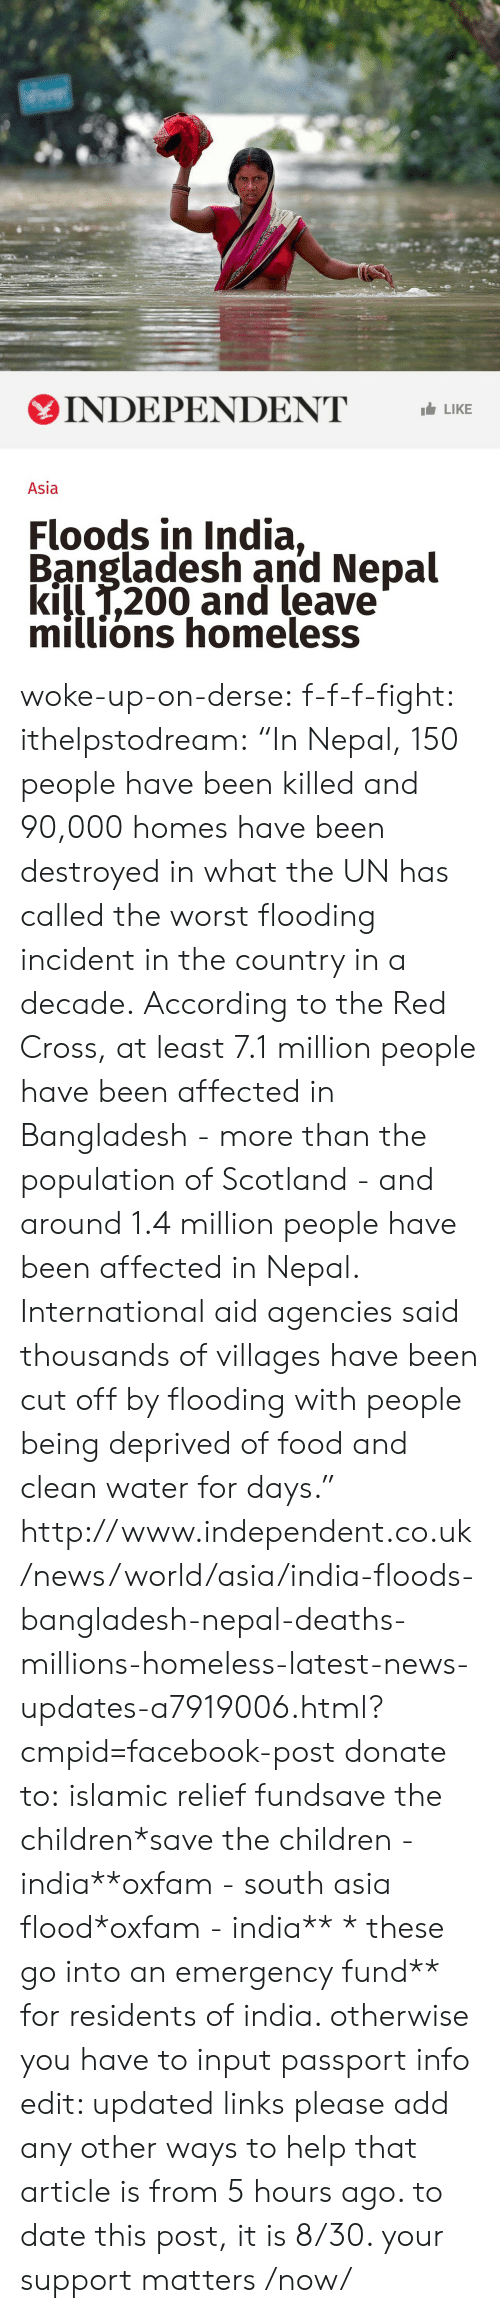 """Oos: INDEPENDENT LIKE  Asia  Floods in India,  Bangladesh and Nepal  kill T,200 and leave  millions homeless woke-up-on-derse:  f-f-f-fight:  ithelpstodream:  """"In Nepal, 150 people have been killed and 90,000 homes have been destroyed in what the UN has called the worst flooding incident in the country in a decade.  According to the Red Cross, at least 7.1 million people have been affected in Bangladesh - more than the population of Scotland - and around 1.4 million people have been affected in Nepal.  International aid agencies said thousands of villages have been cut off by flooding with people being deprived of food and clean water for days.""""  http://www.independent.co.uk/news/world/asia/india-floods-bangladesh-nepal-deaths-millions-homeless-latest-news-updates-a7919006.html?cmpid=facebook-post  donate to:islamic relief fundsave the children*save the children - india**oxfam - south asia flood*oxfam - india** * these go into an emergency fund** for residents of india. otherwise you have to input passport info edit: updated links please add any other ways to help  that article is from 5 hours ago.  to date this post, it is 8/30. your support matters /now/"""